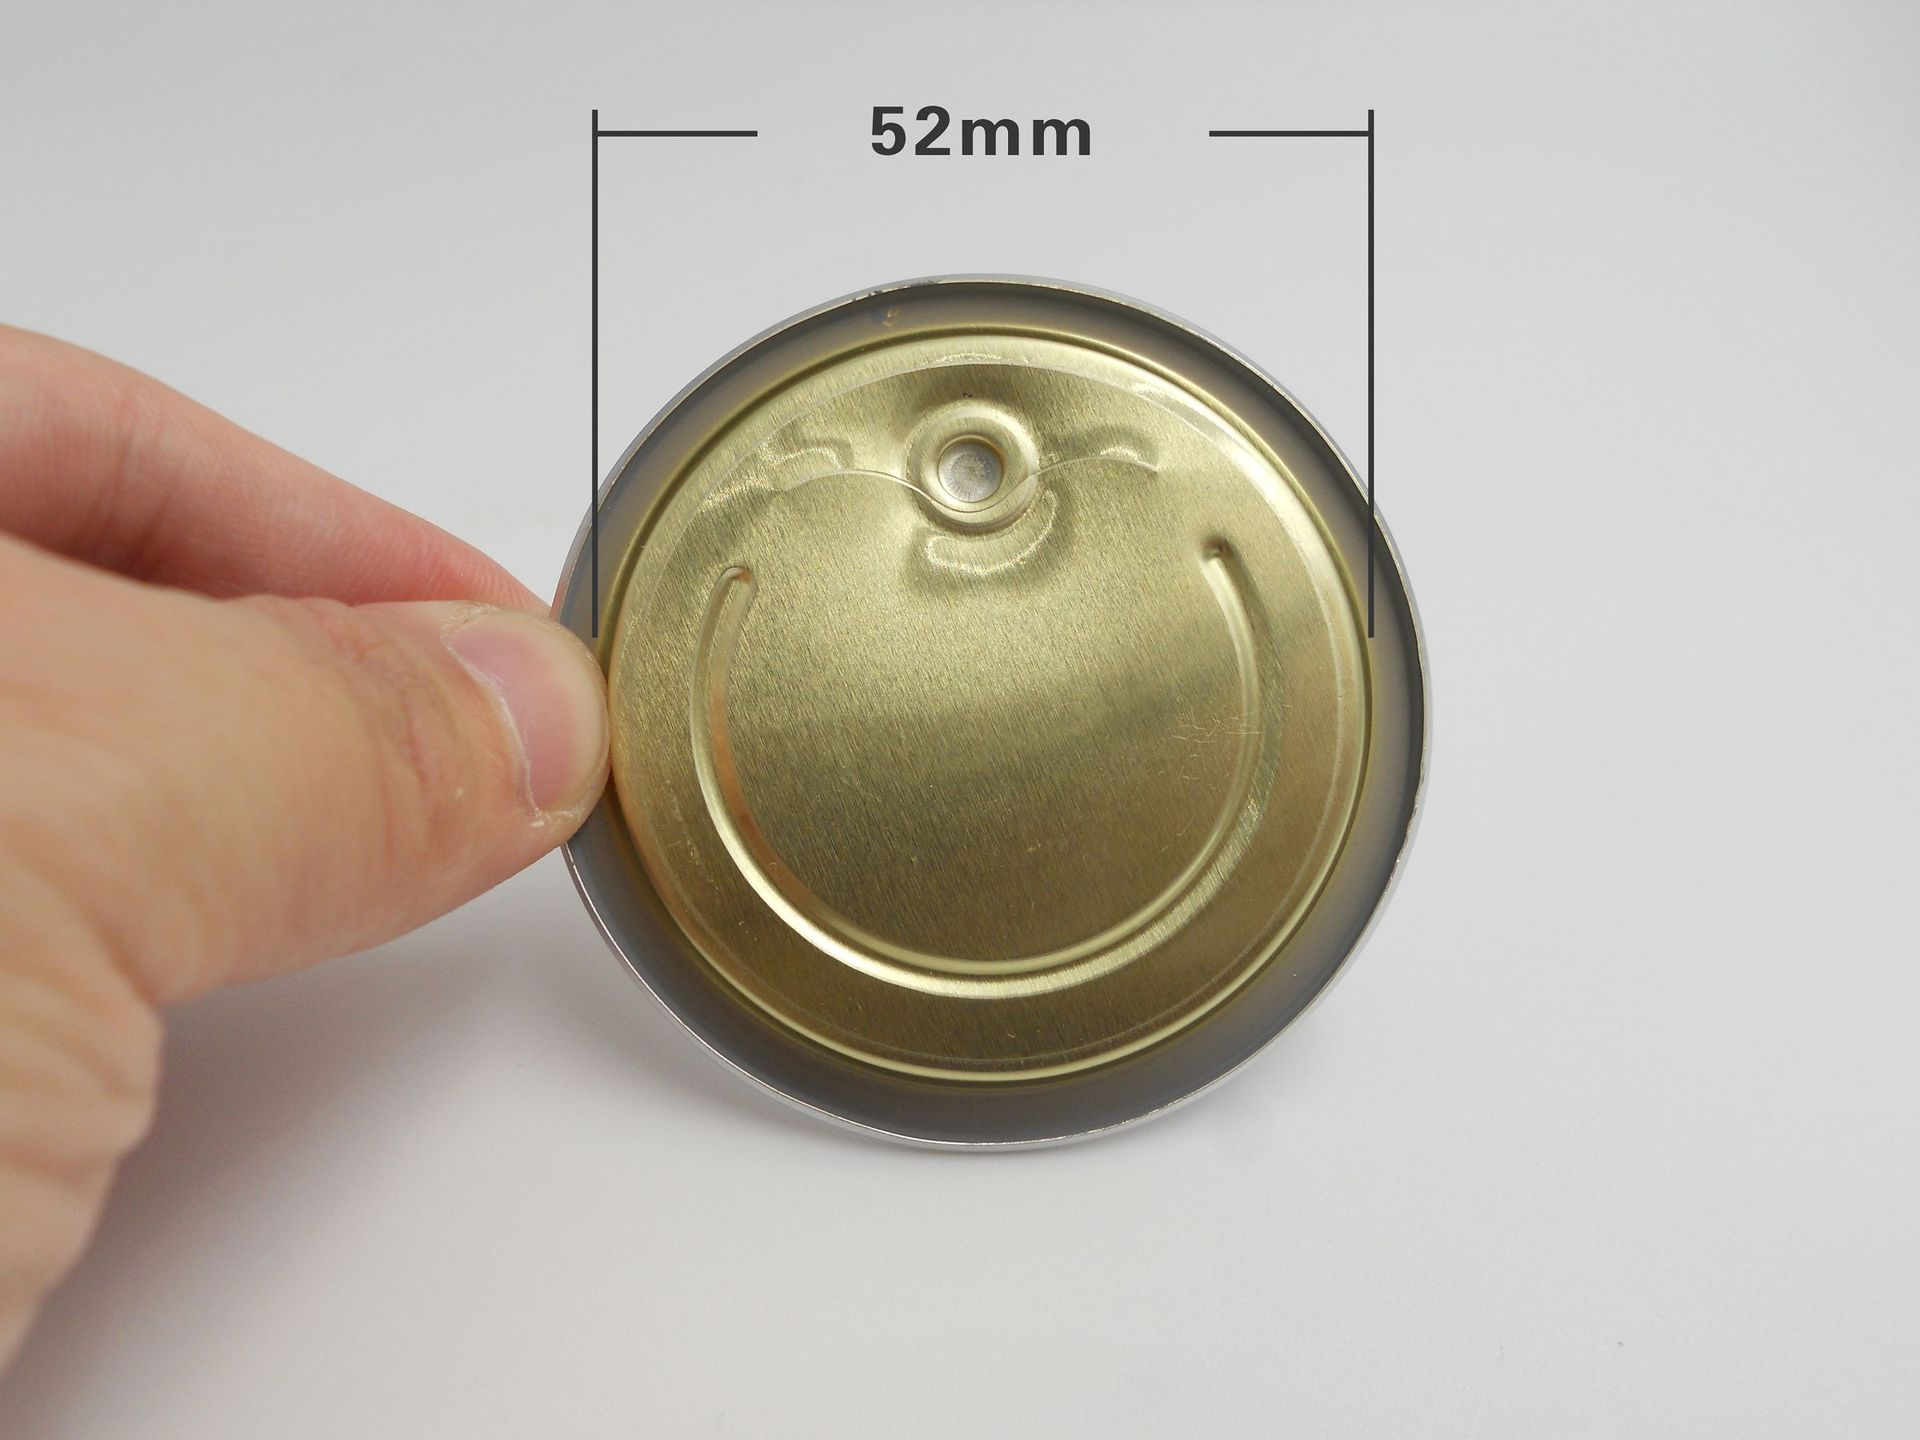 Factory outlet customize aluminum and tin easy open Beer Can Lids  soda can lid  202 52 mm